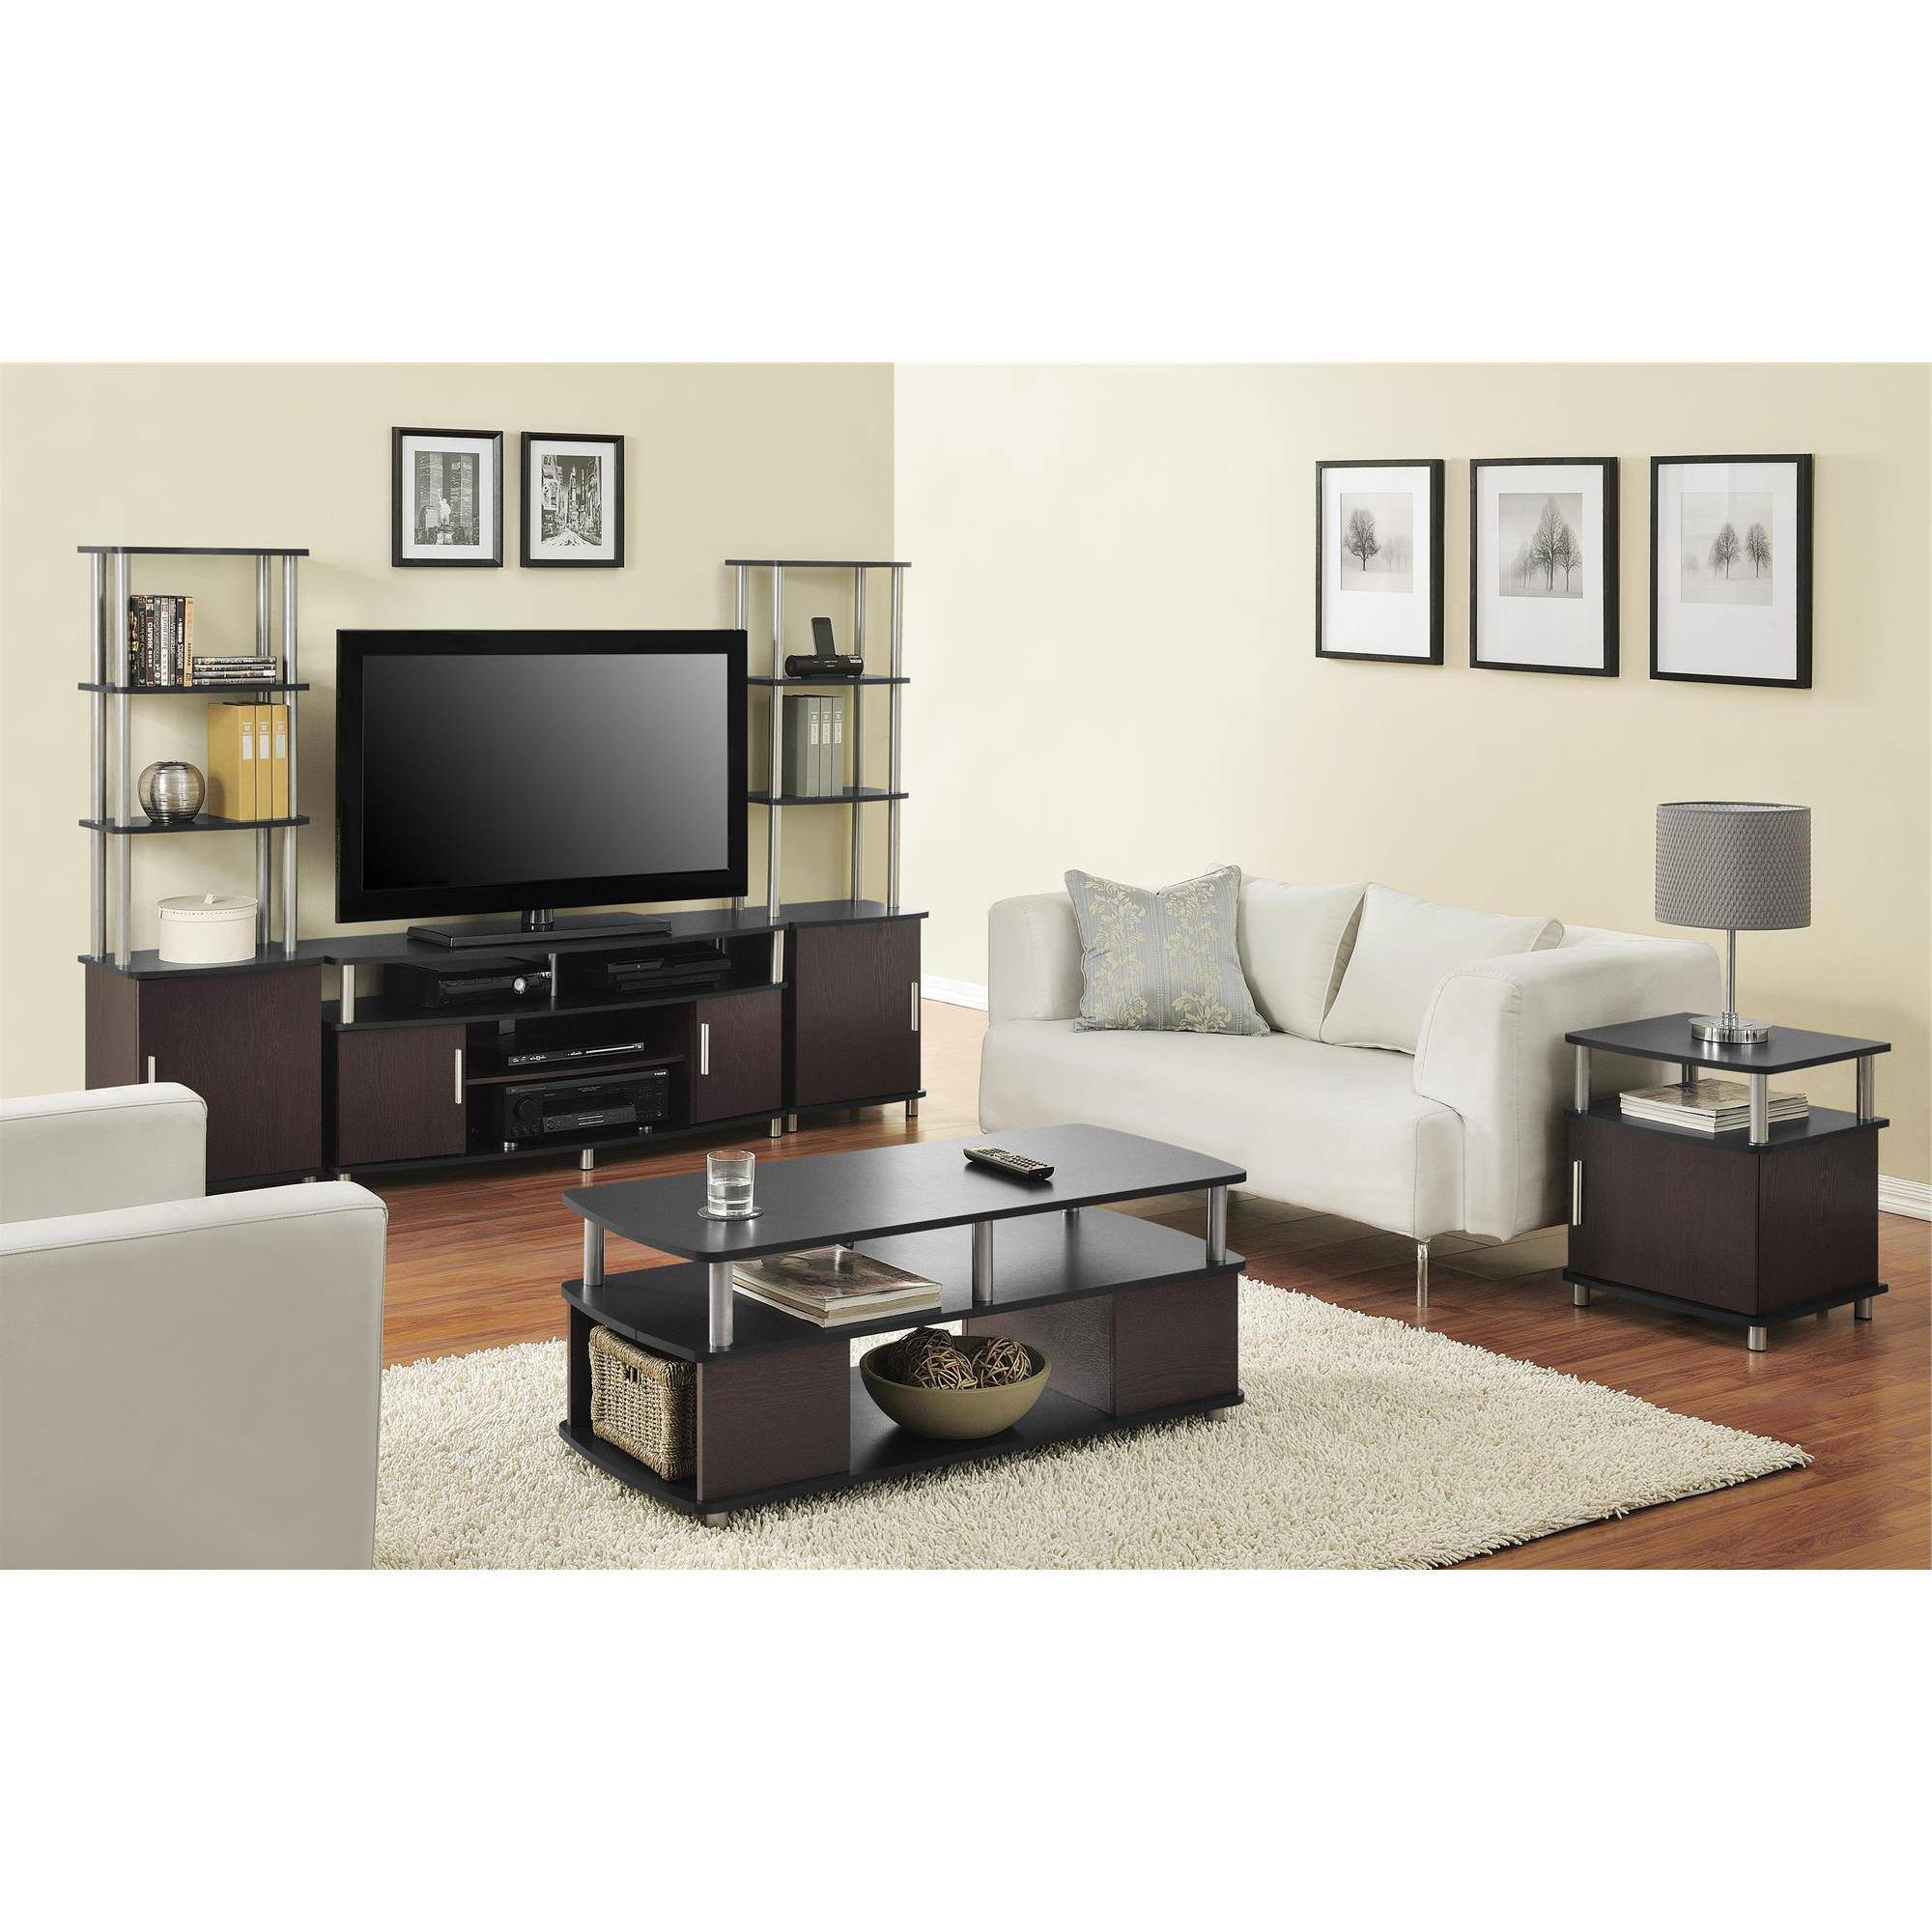 Matching Tv Stand And Computer Desk Can I Use A Coffee Table As With Regard To Famous Tv Cabinets And Coffee Table Sets (View 12 of 20)